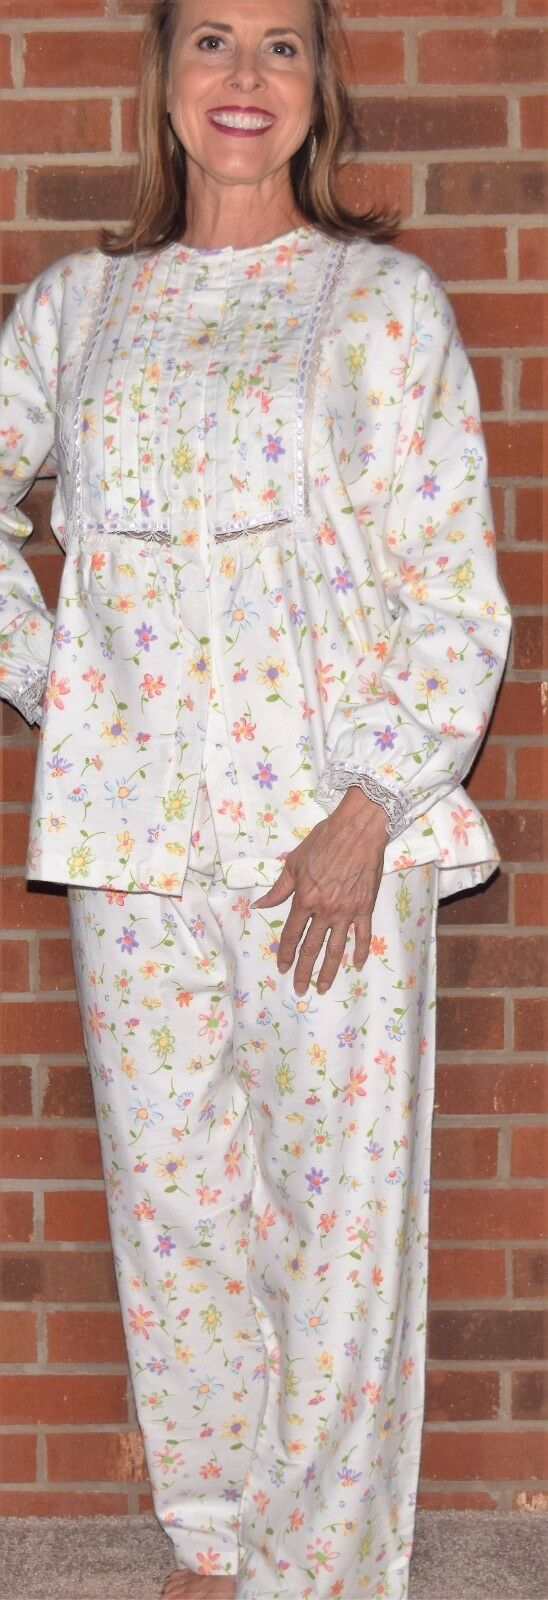 Pajamas Flannel Very Pretty 'Made in USA'